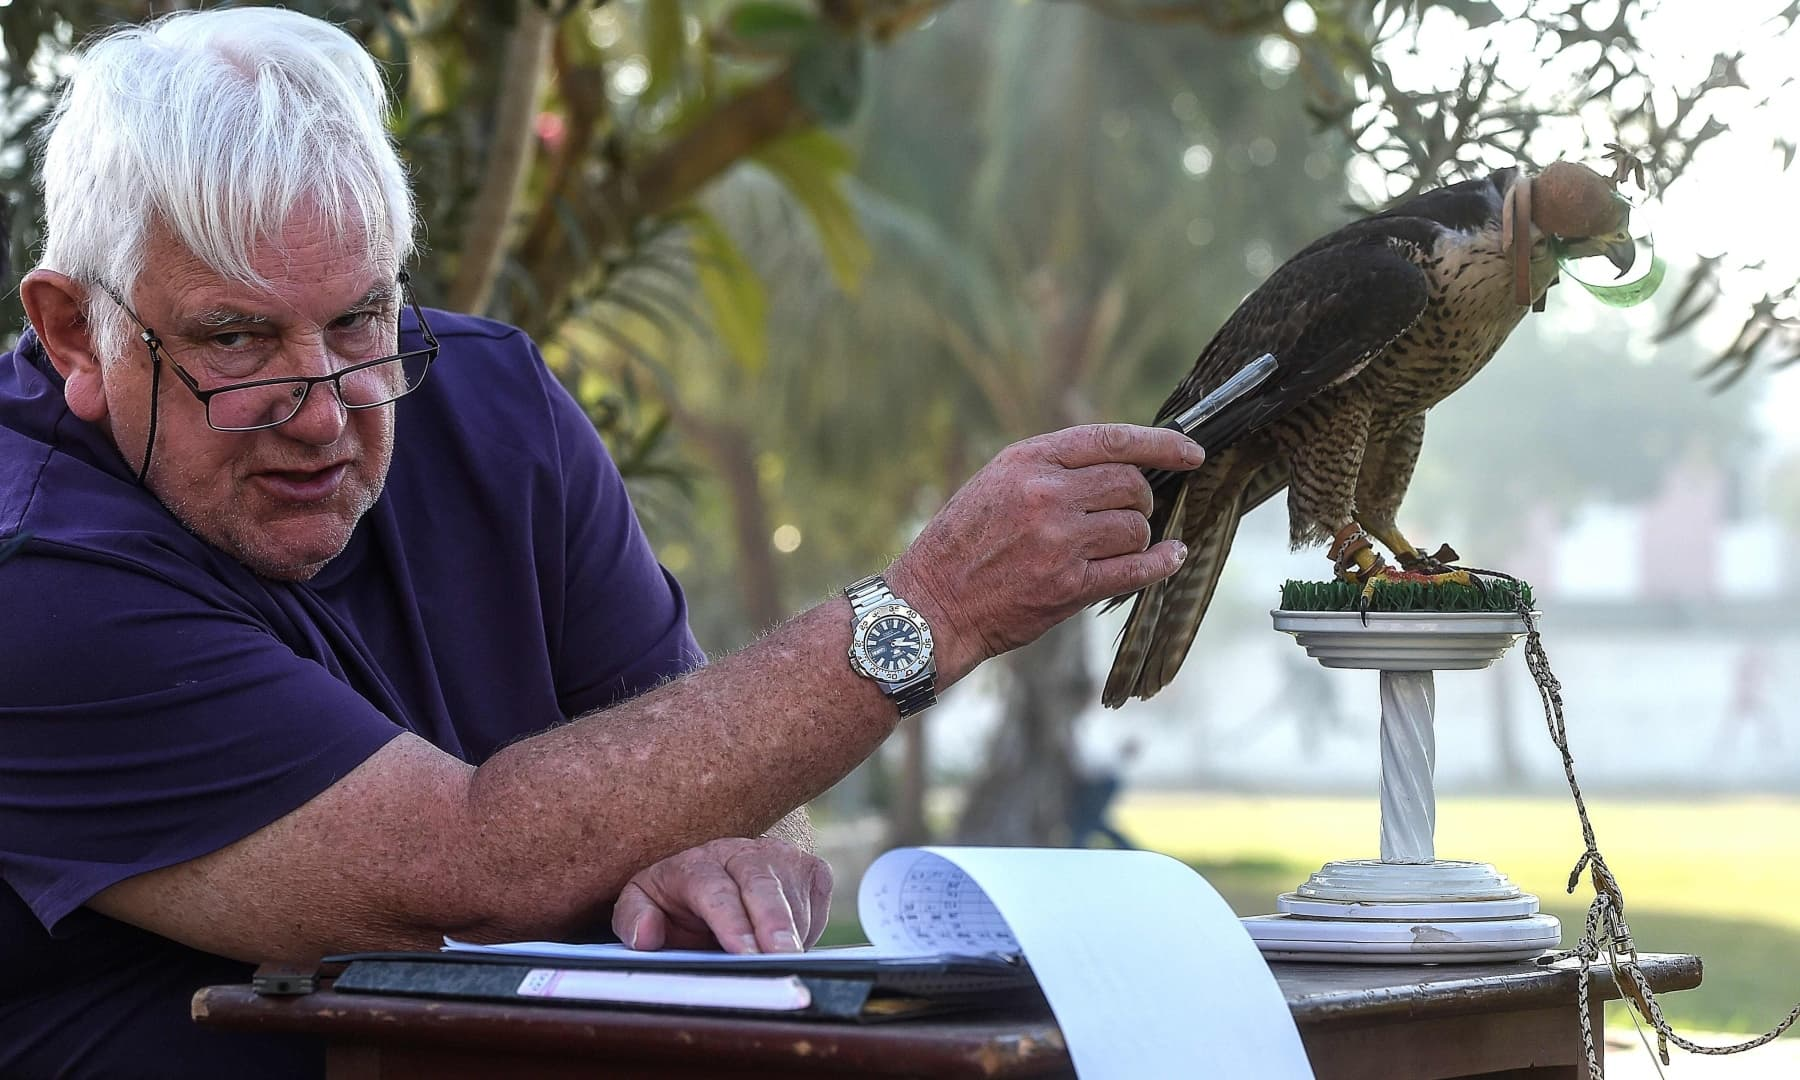 Bob Dalton, a veteran falcon conservationist and project co-ordinator for Project Lugger, weighs a falcon as he works on the rehabilitation of falcons seized by authorities from smugglers, in Karachi in this Nov 23, 2020, photo. — AFP